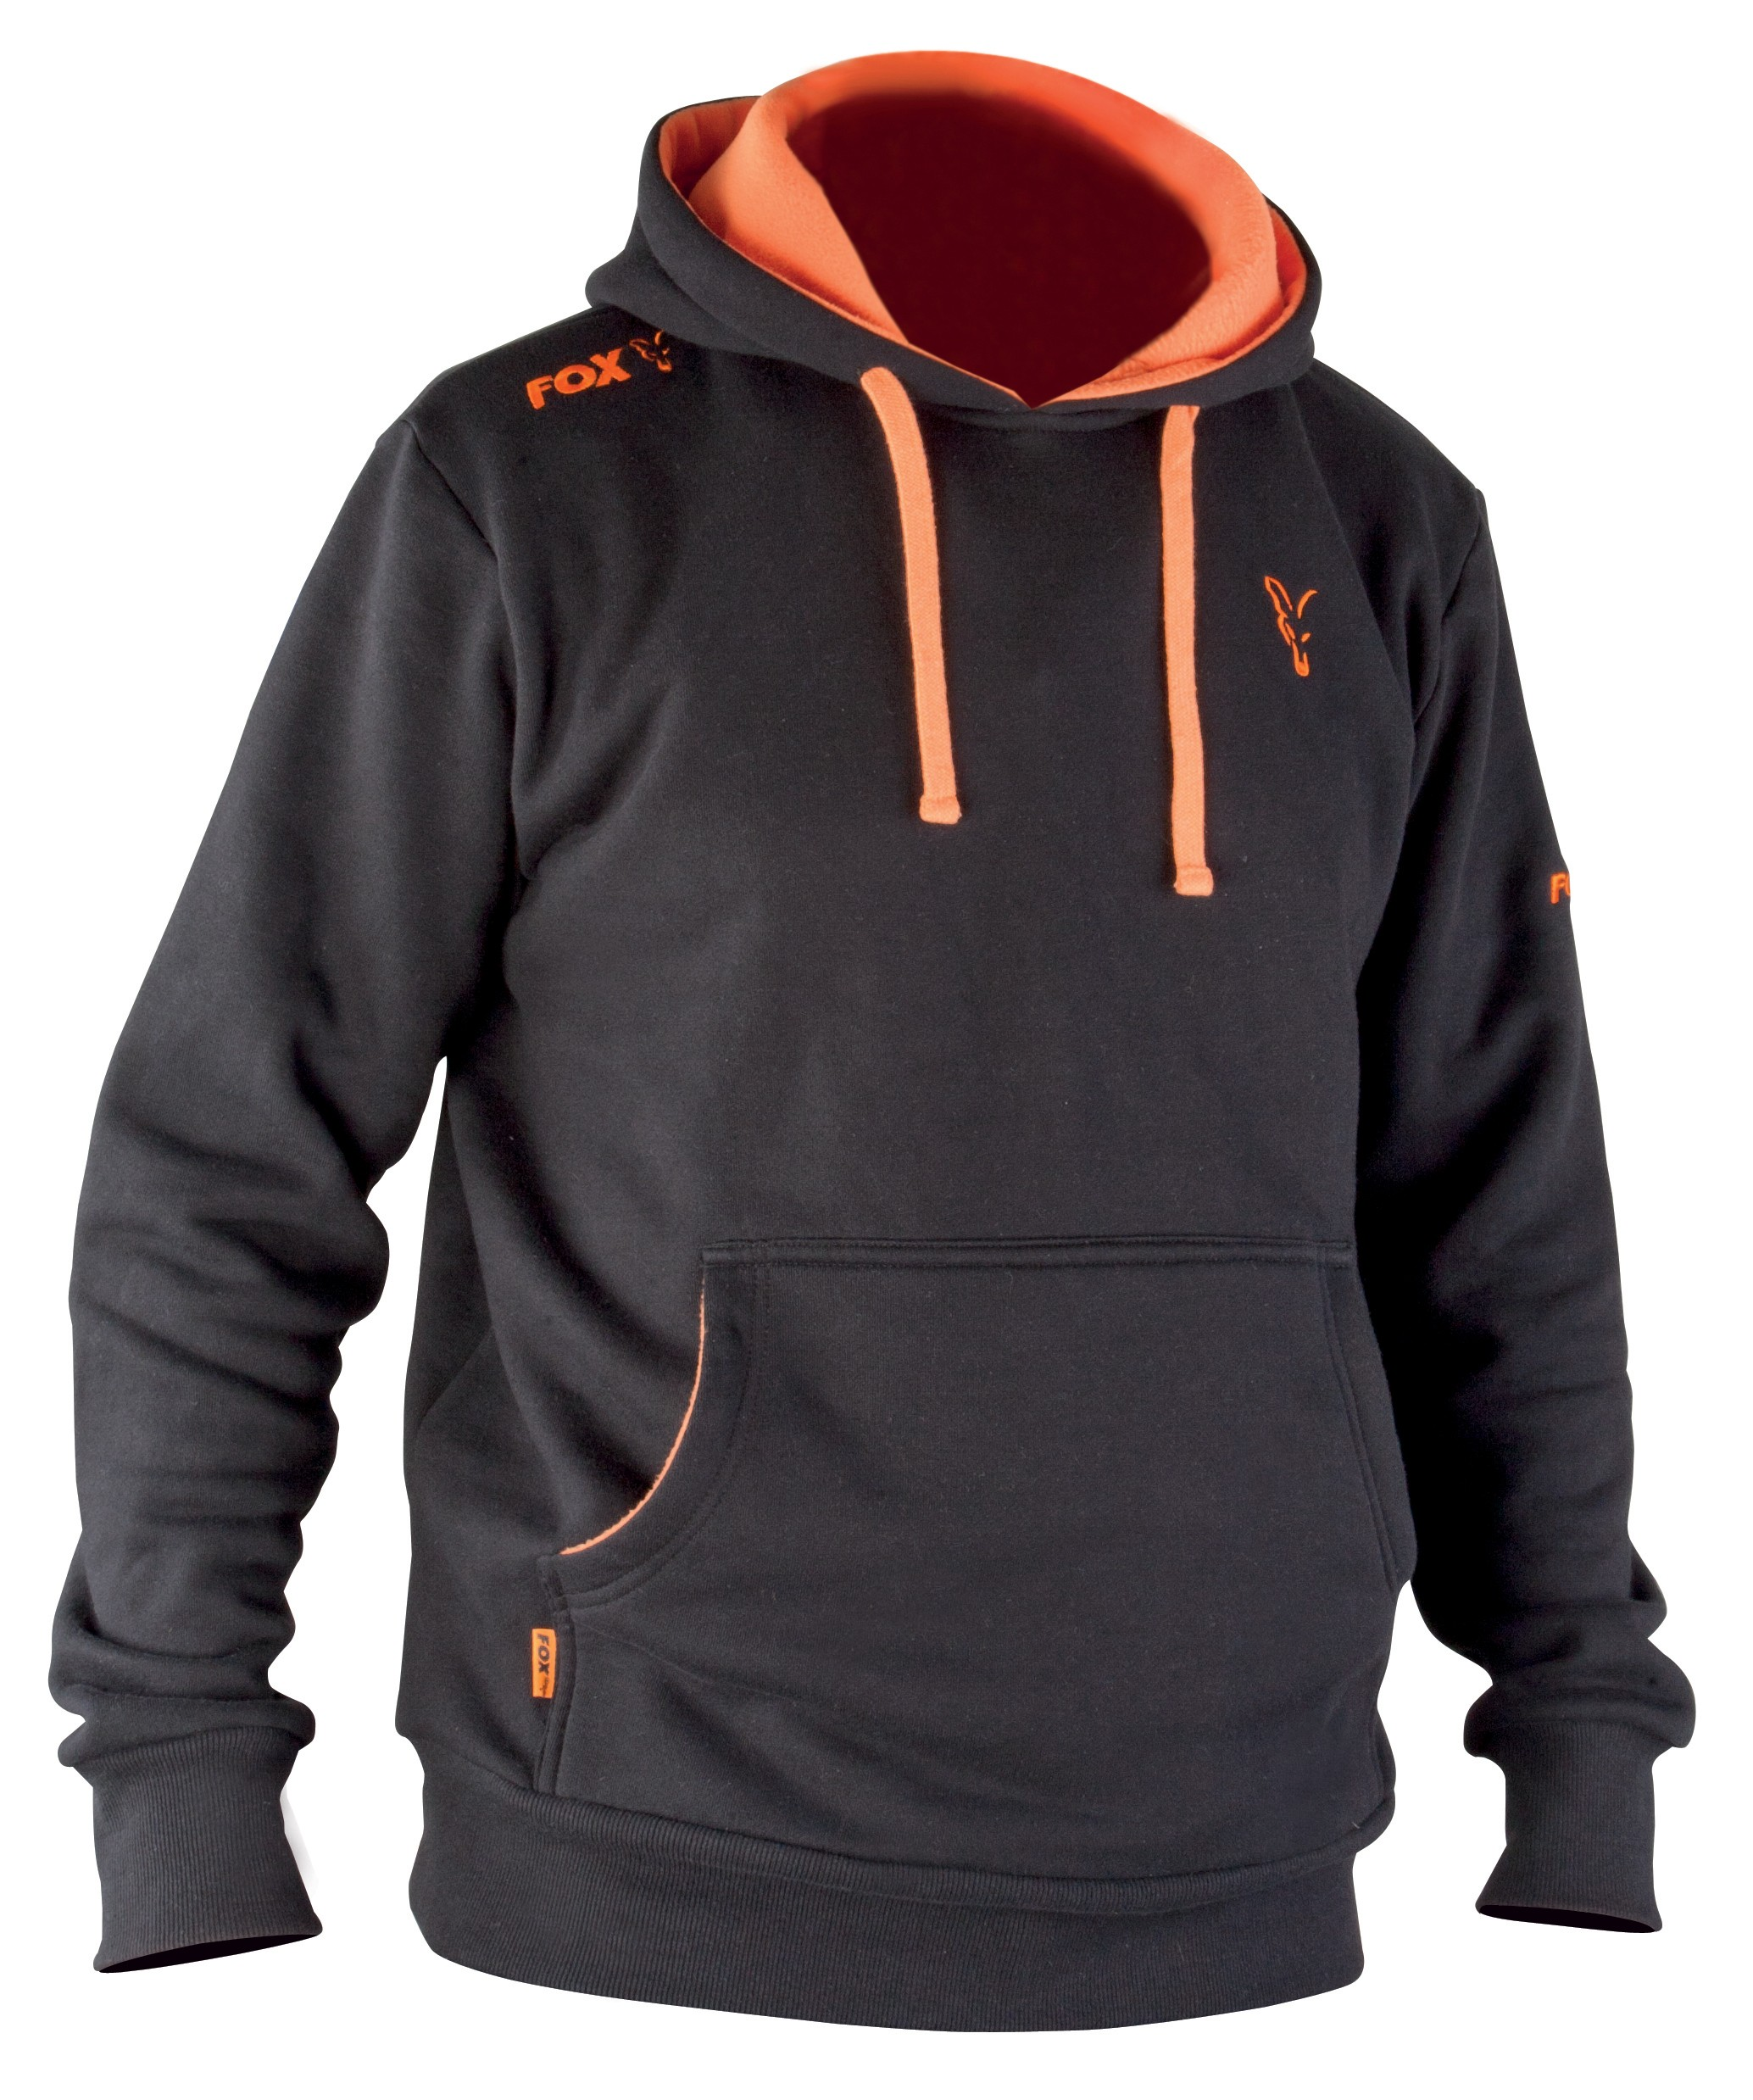 Pulover Fox Black Orange Hoodie XL